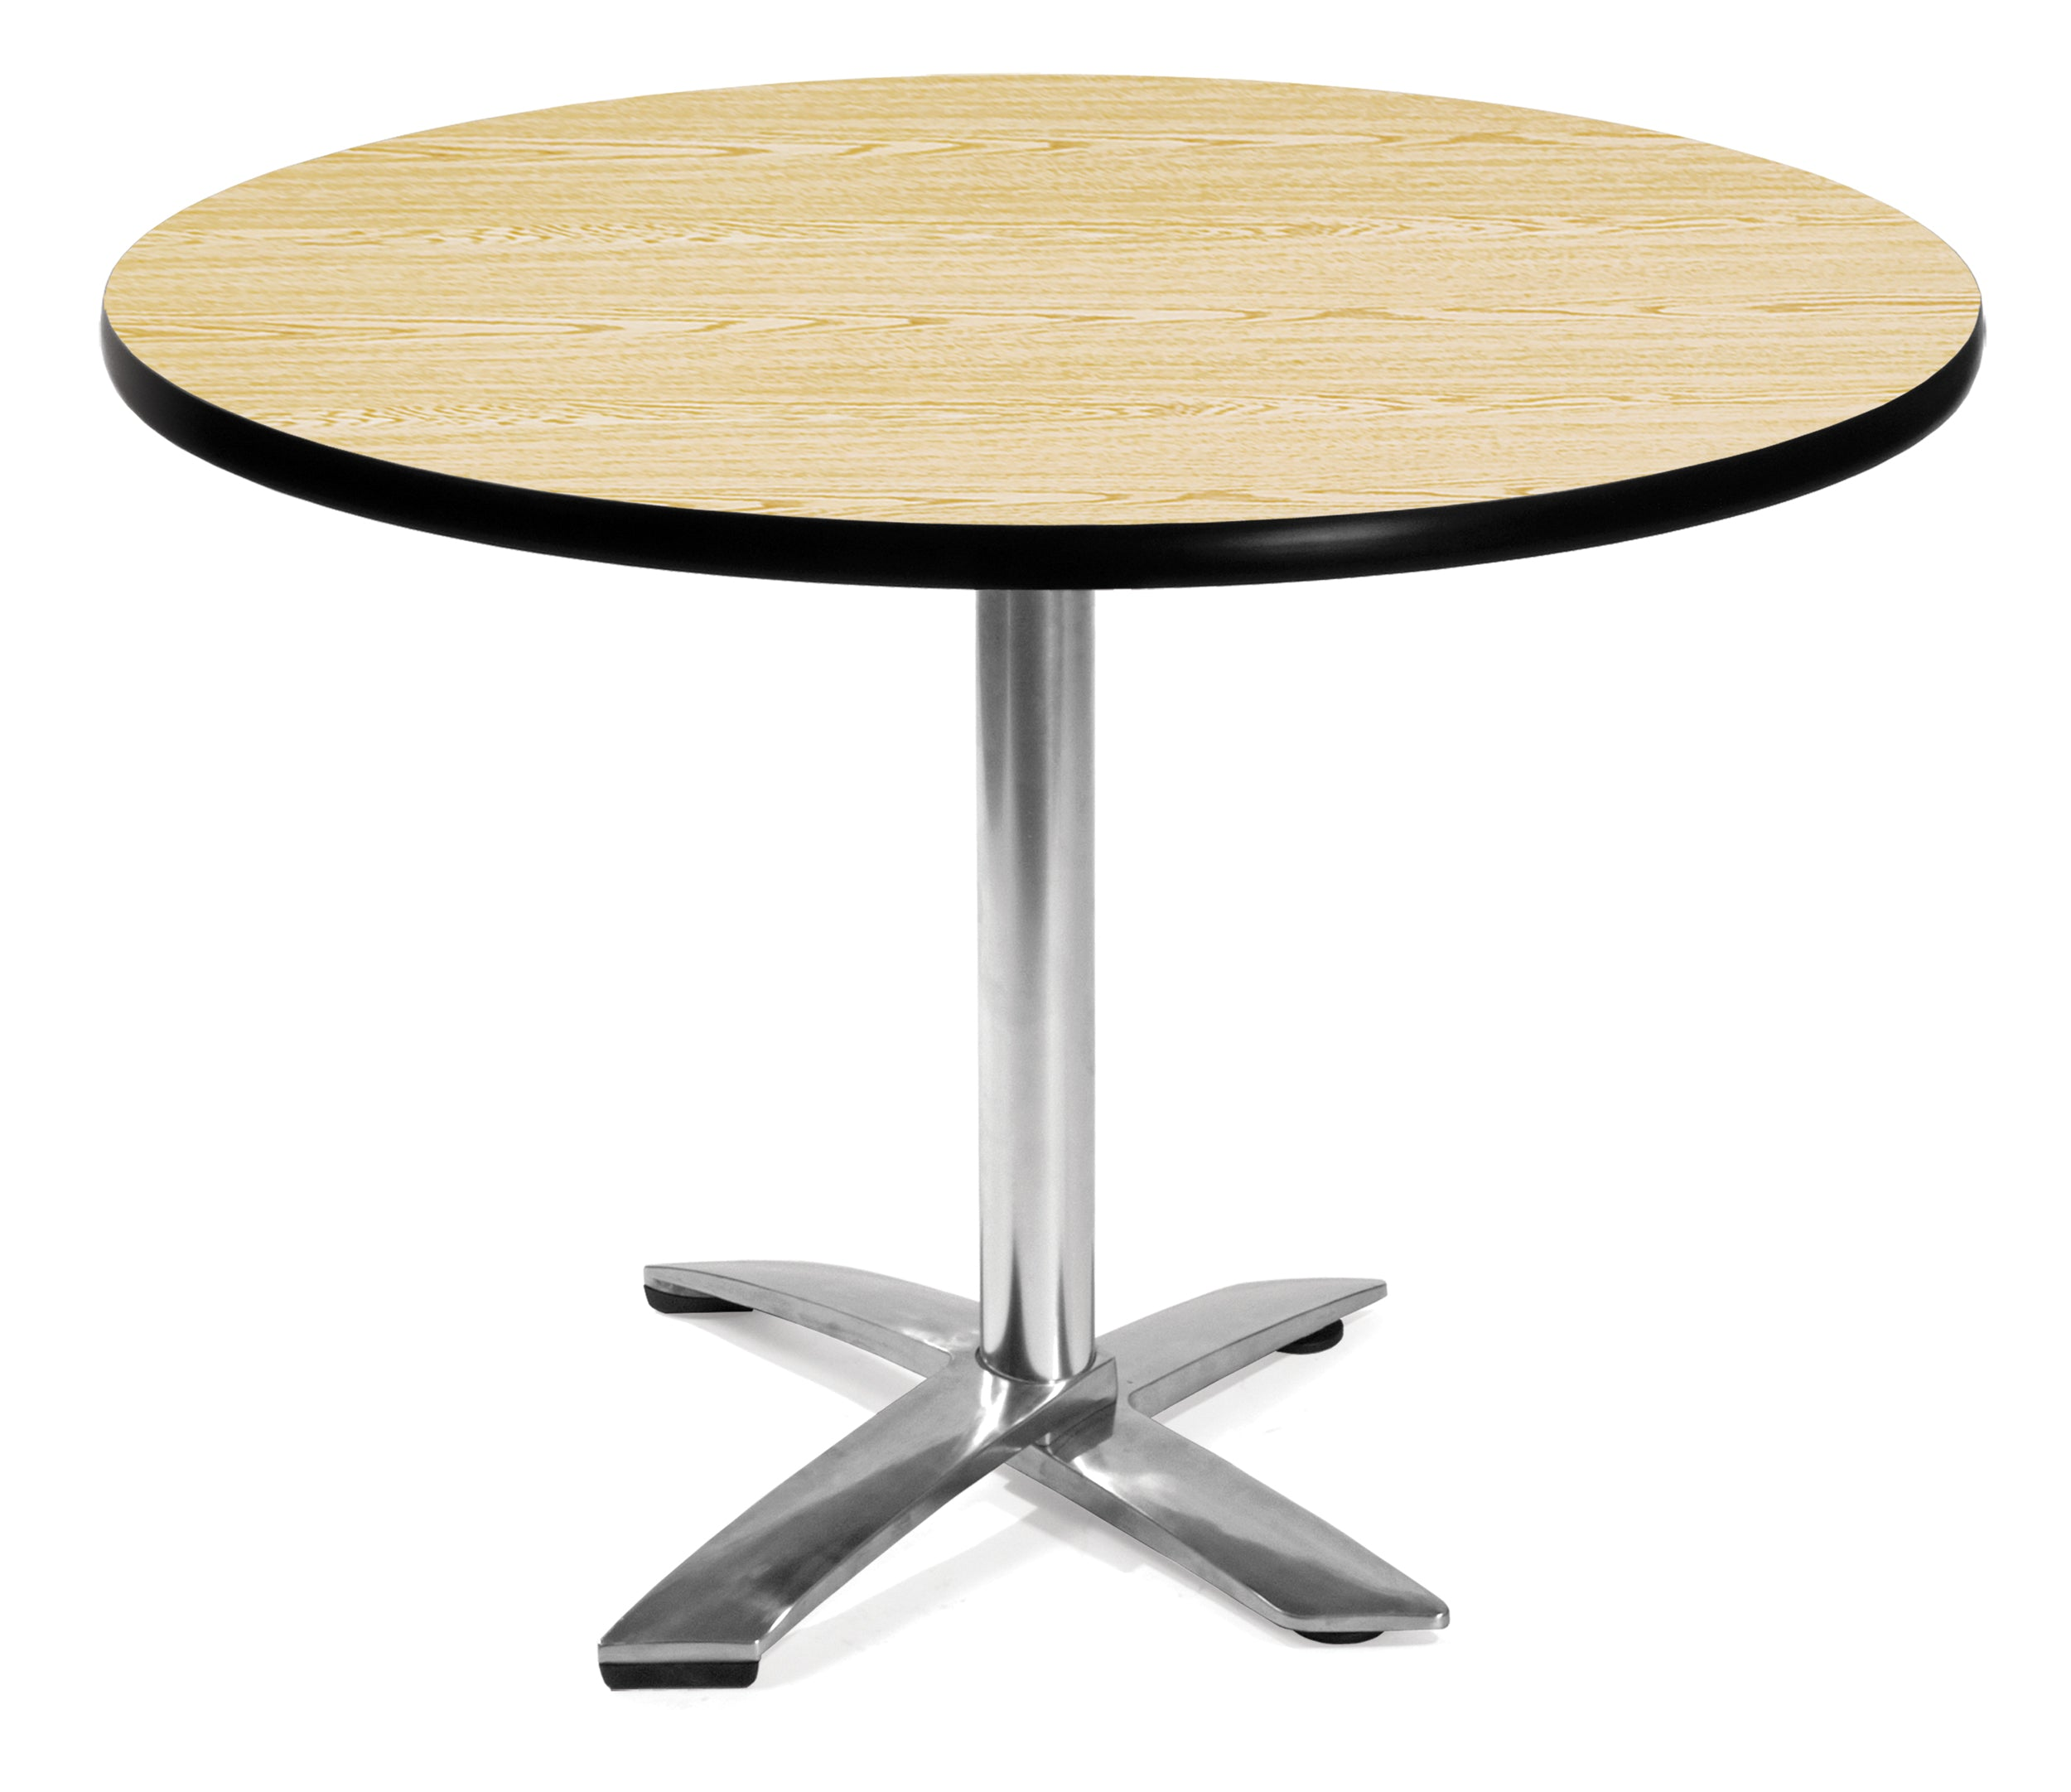 Ofminc Model FT42RD 42 Inch Round Flip-Top Multi-Purpose Table